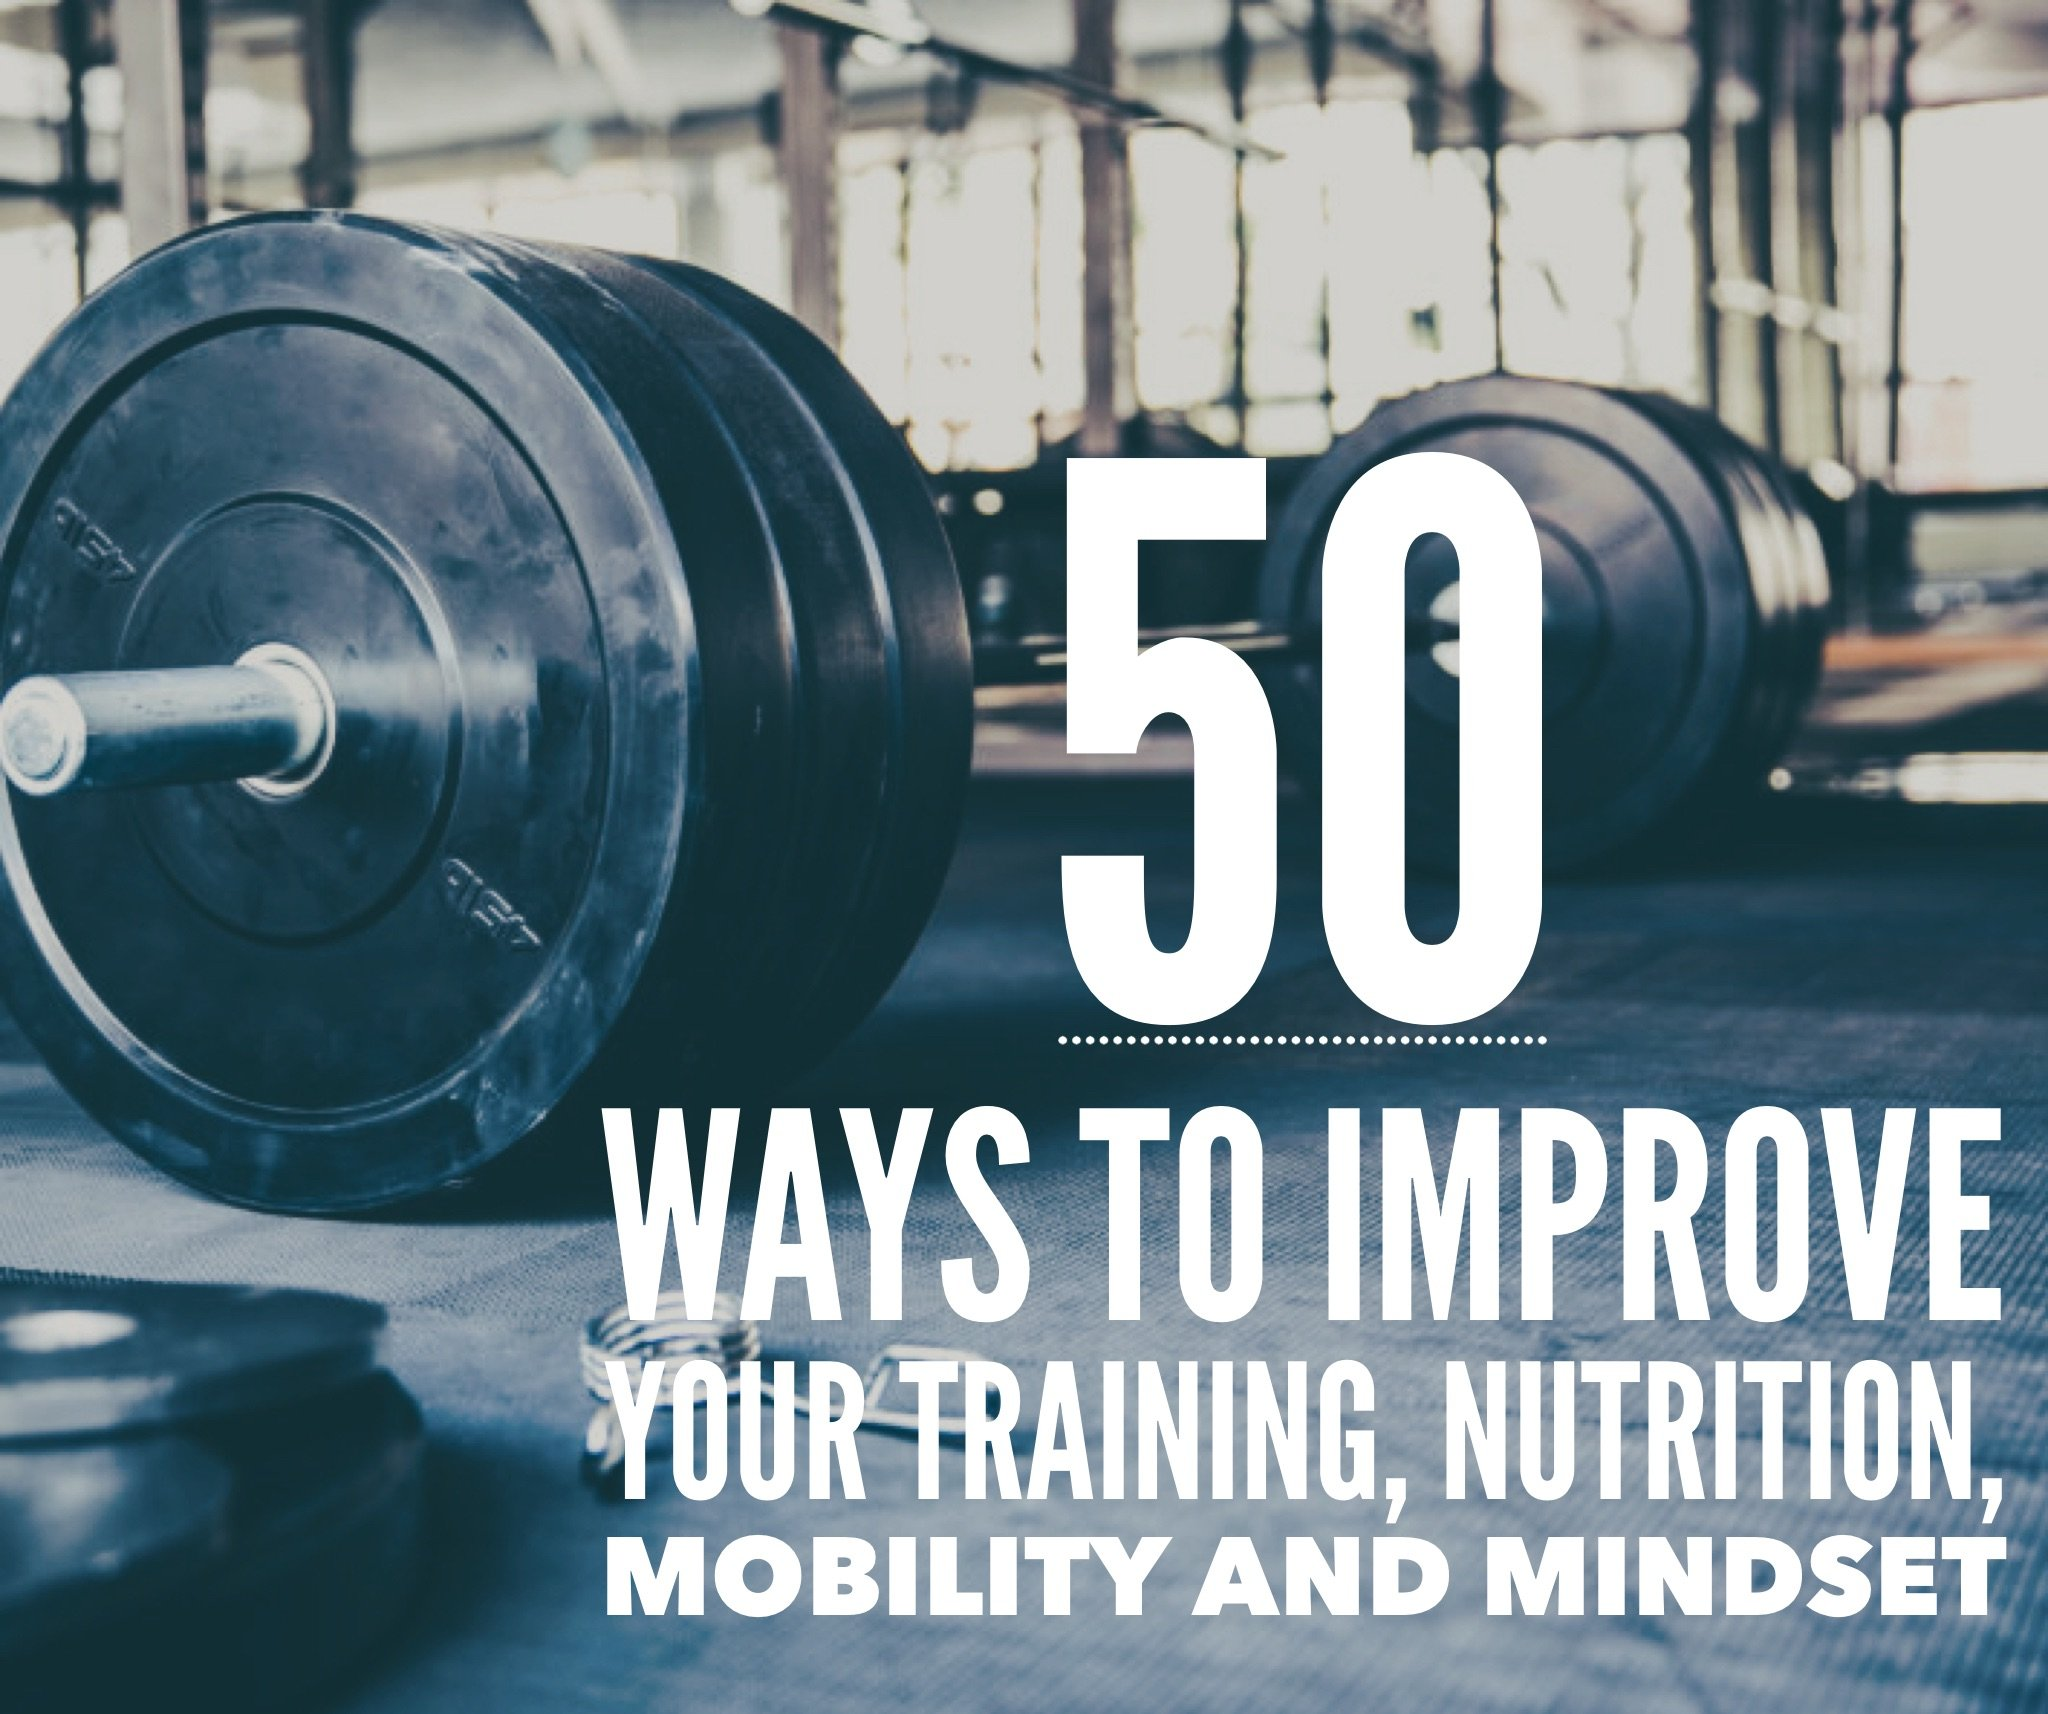 athlete daily functional fitness resources crossfit strength